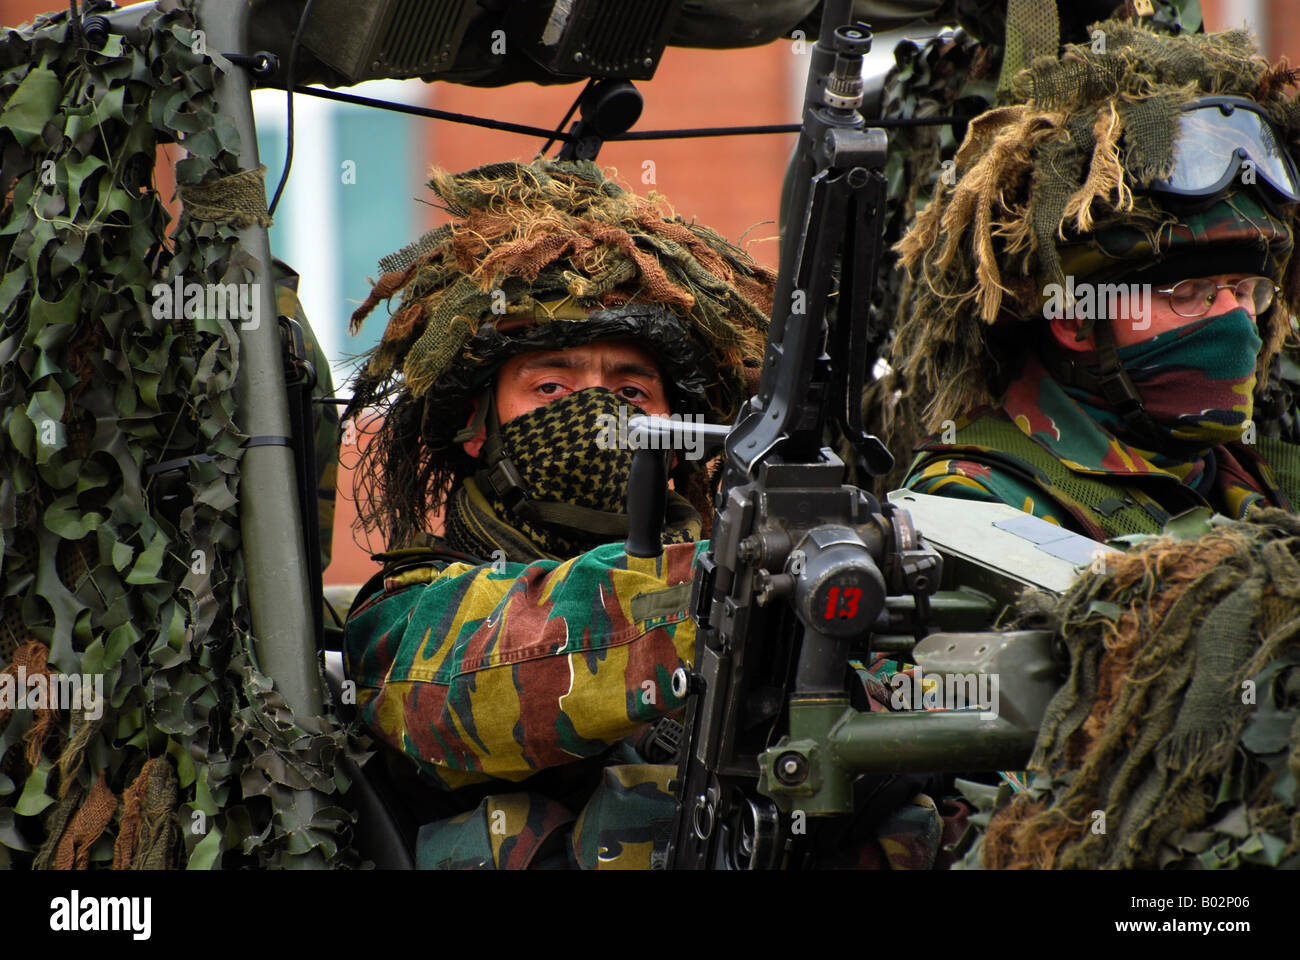 Members of a recce or scout team of the Belgian Army. Stock Photo